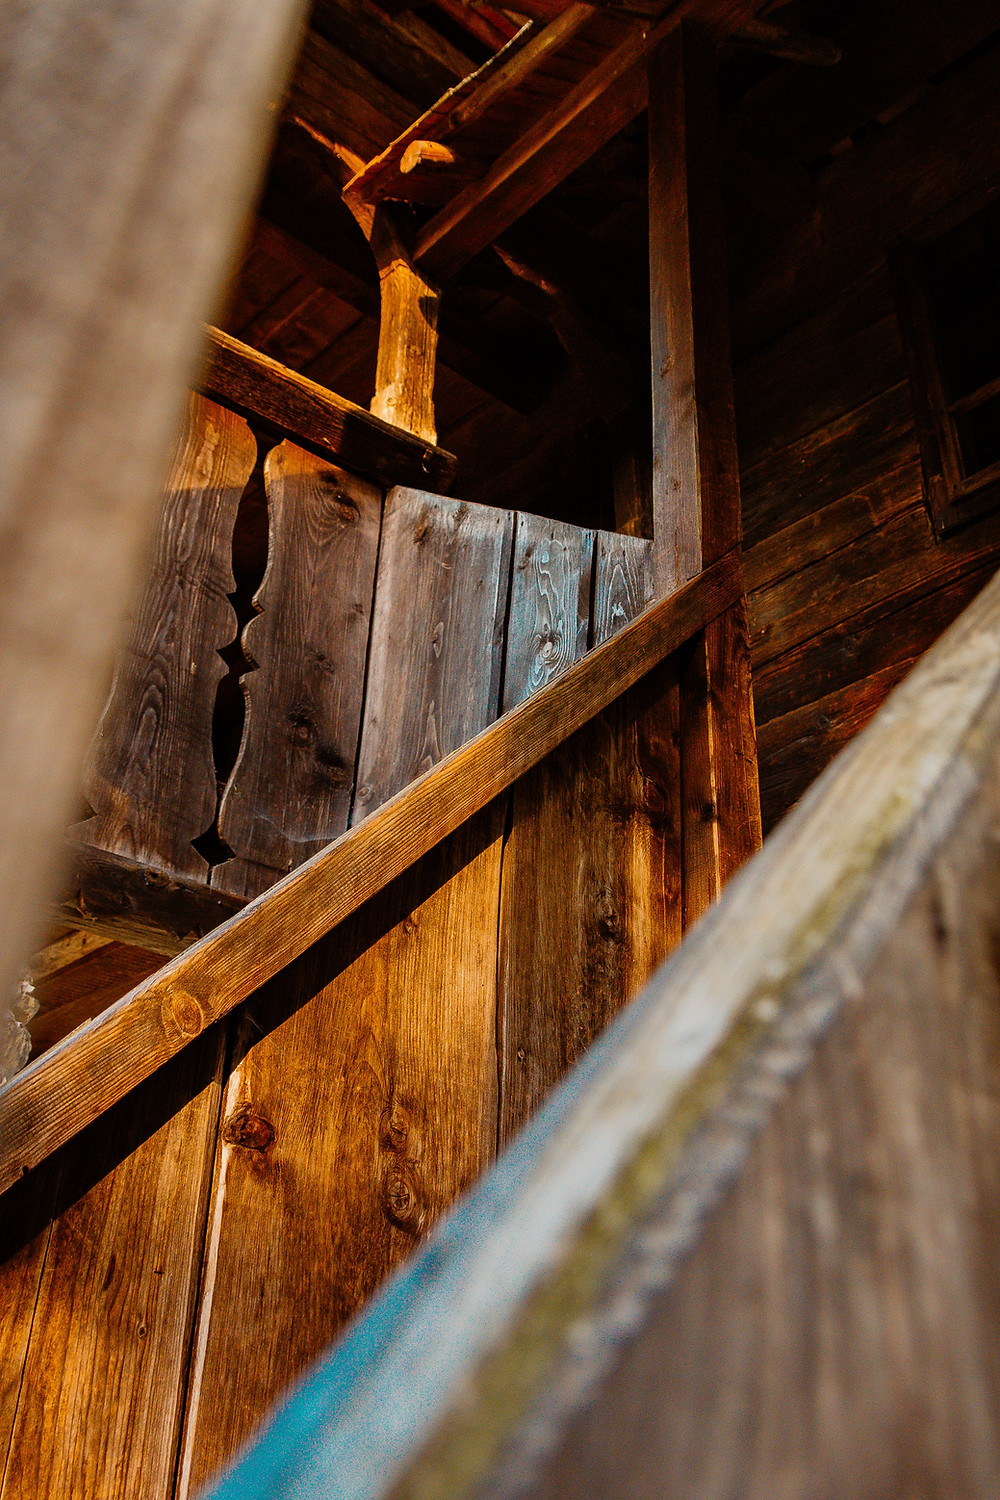 Wooden tavern stairs and bannister